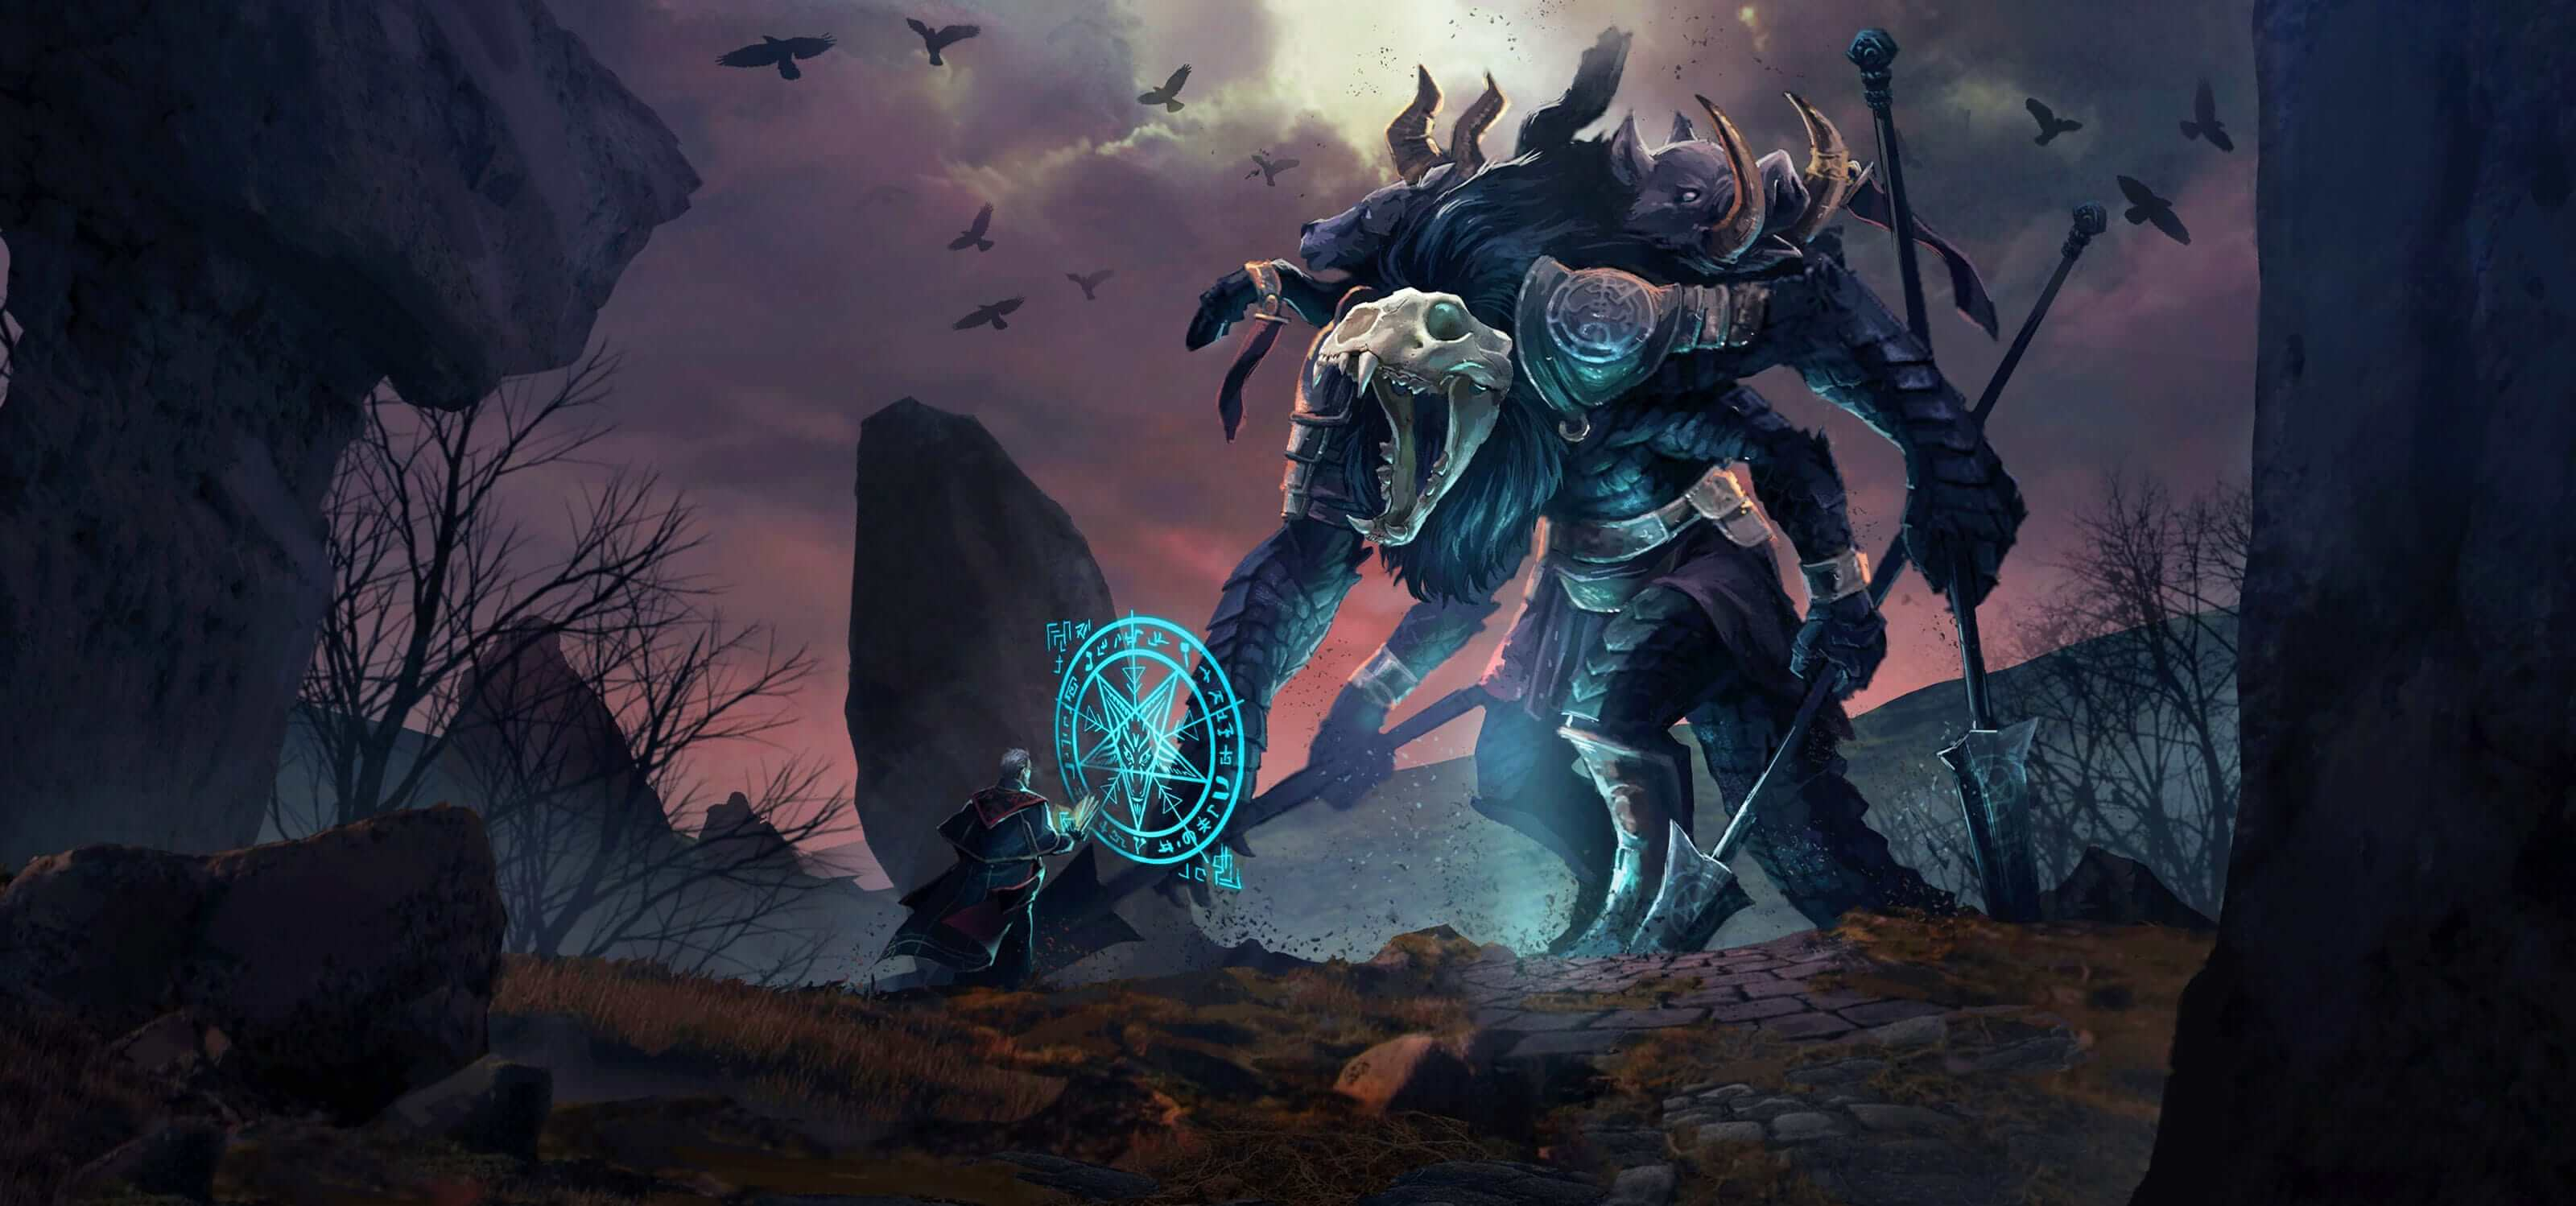 In a dark, desolate area, a man casts a glowing blue rune in front of a tall, roaring beast carrying large spears.